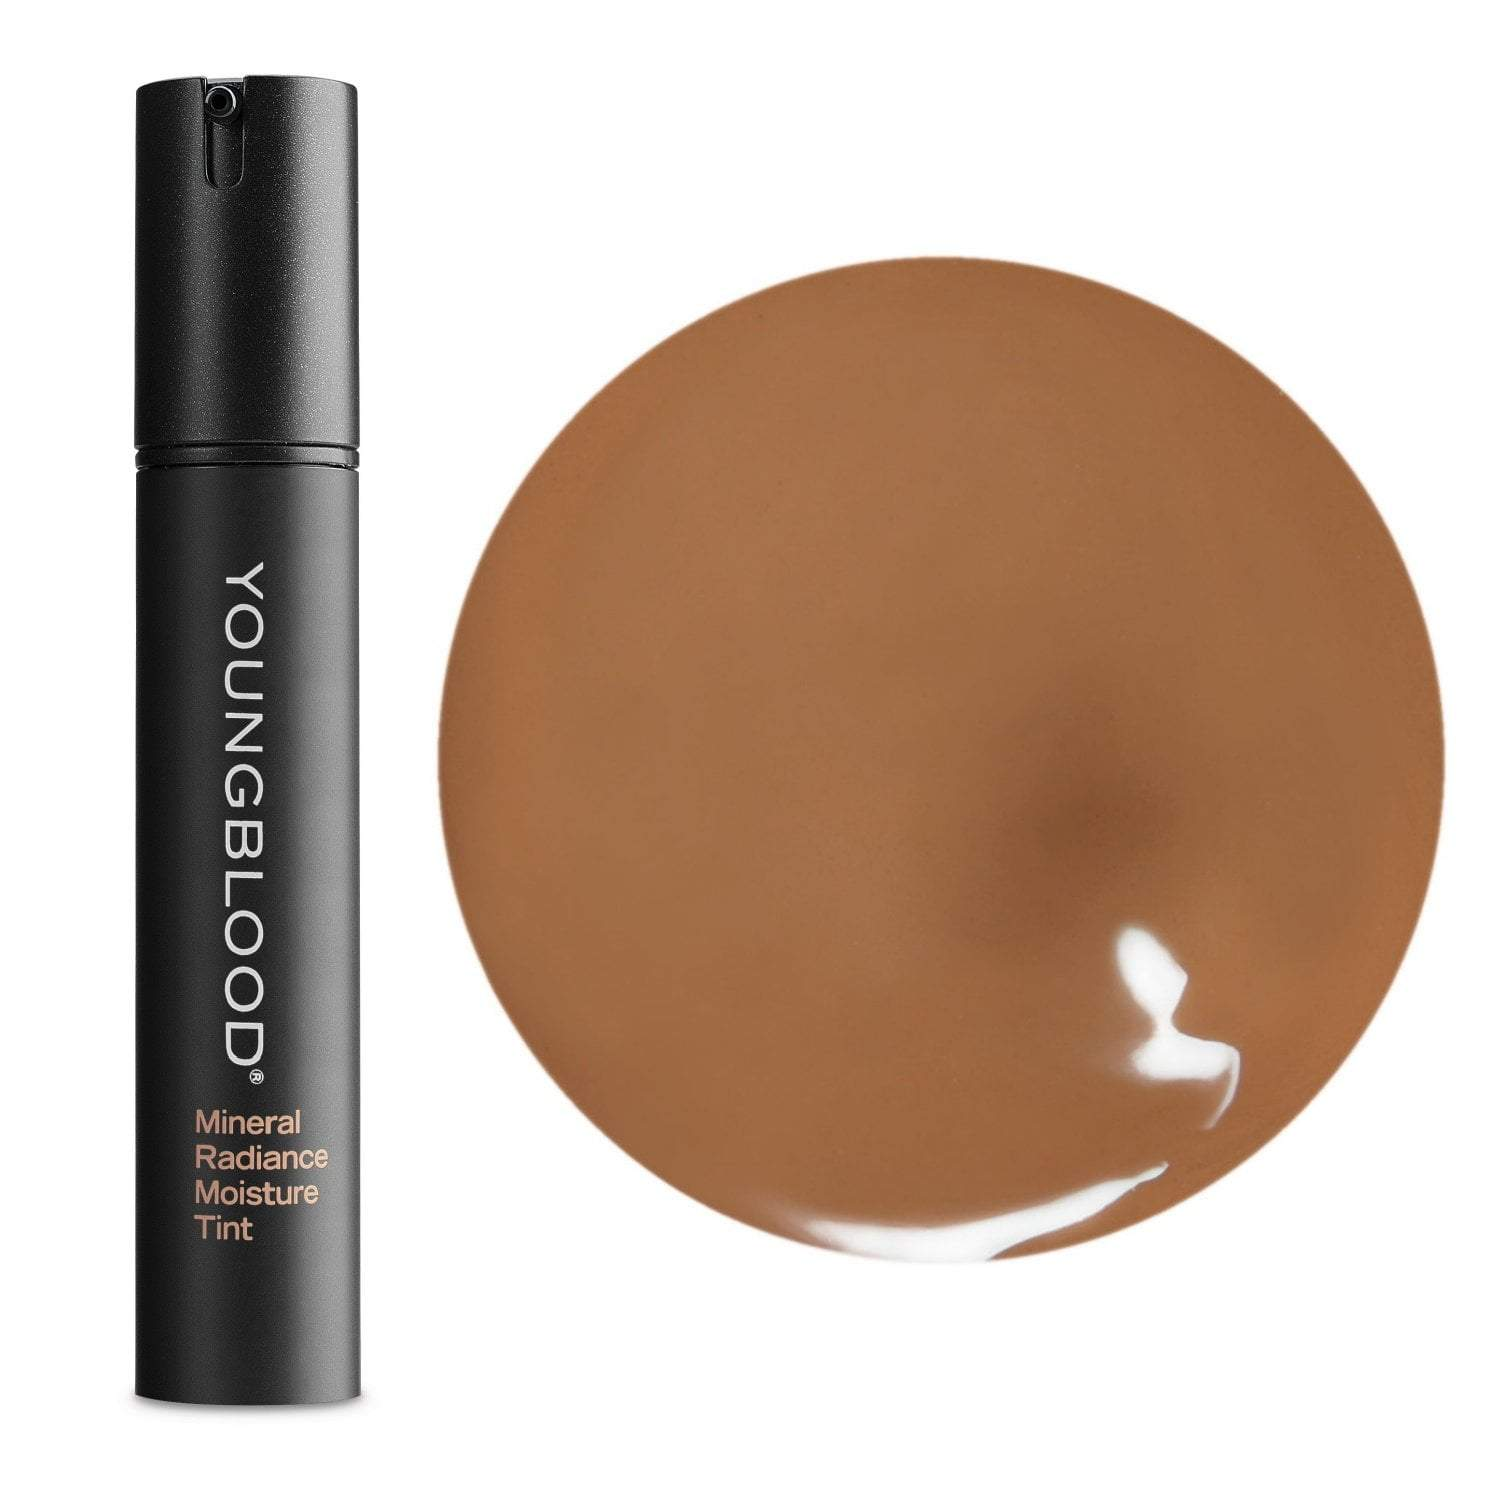 Warm, Mineral Radiance Moisture Tint, Youngblood